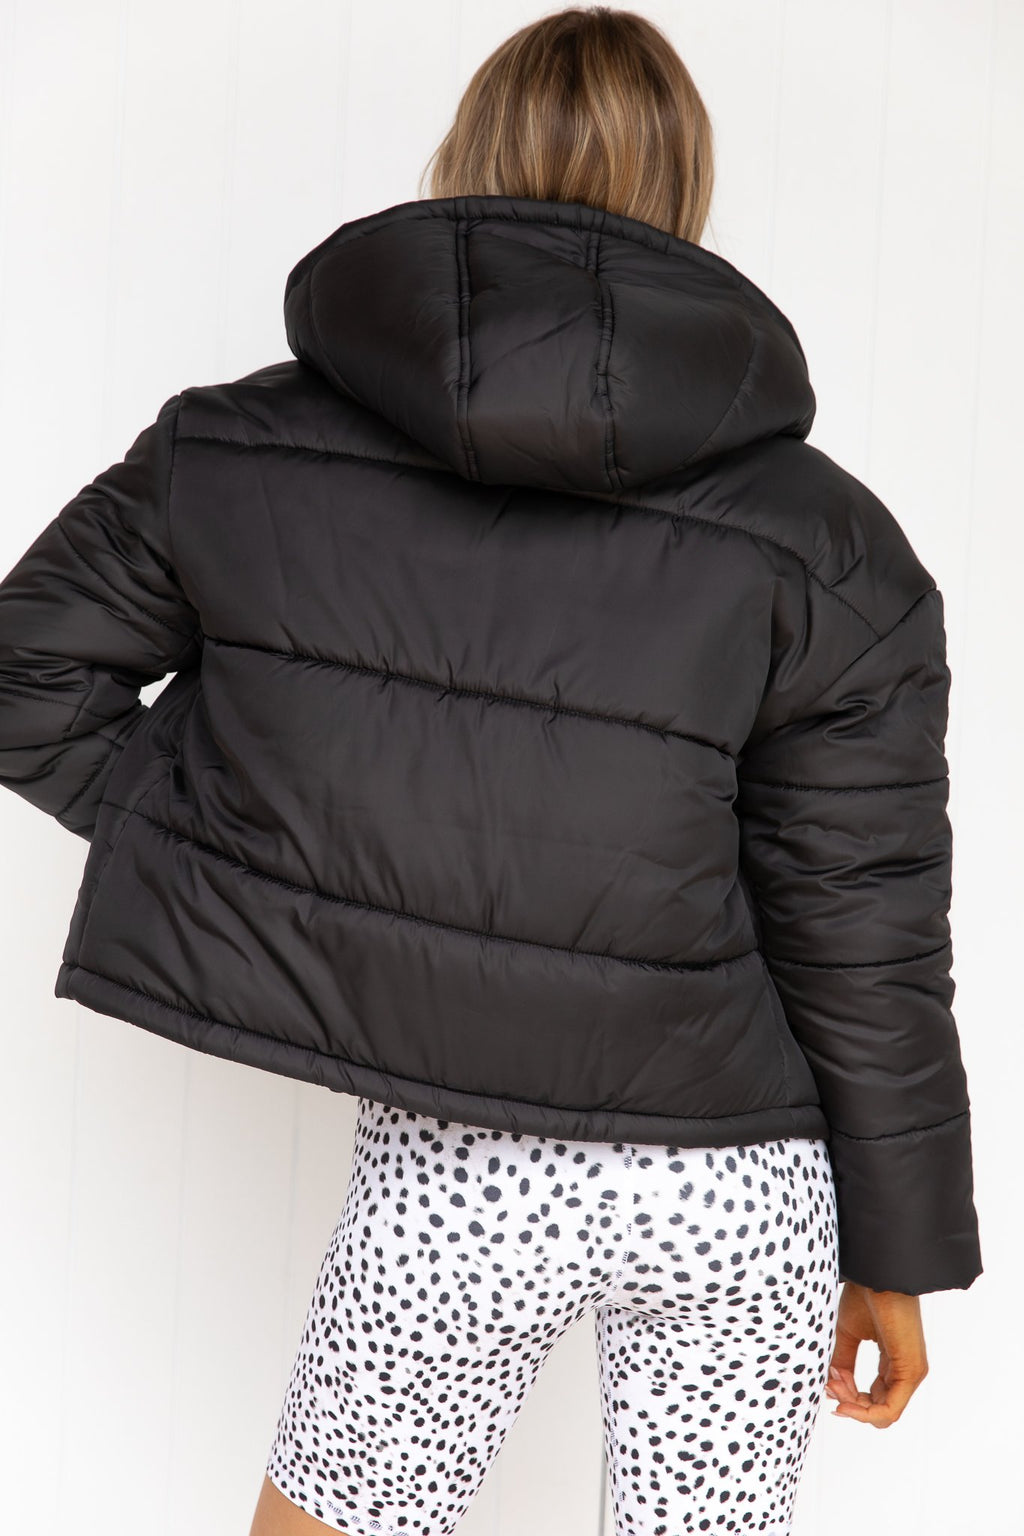 Taking Chances Puffer Jacket - Black